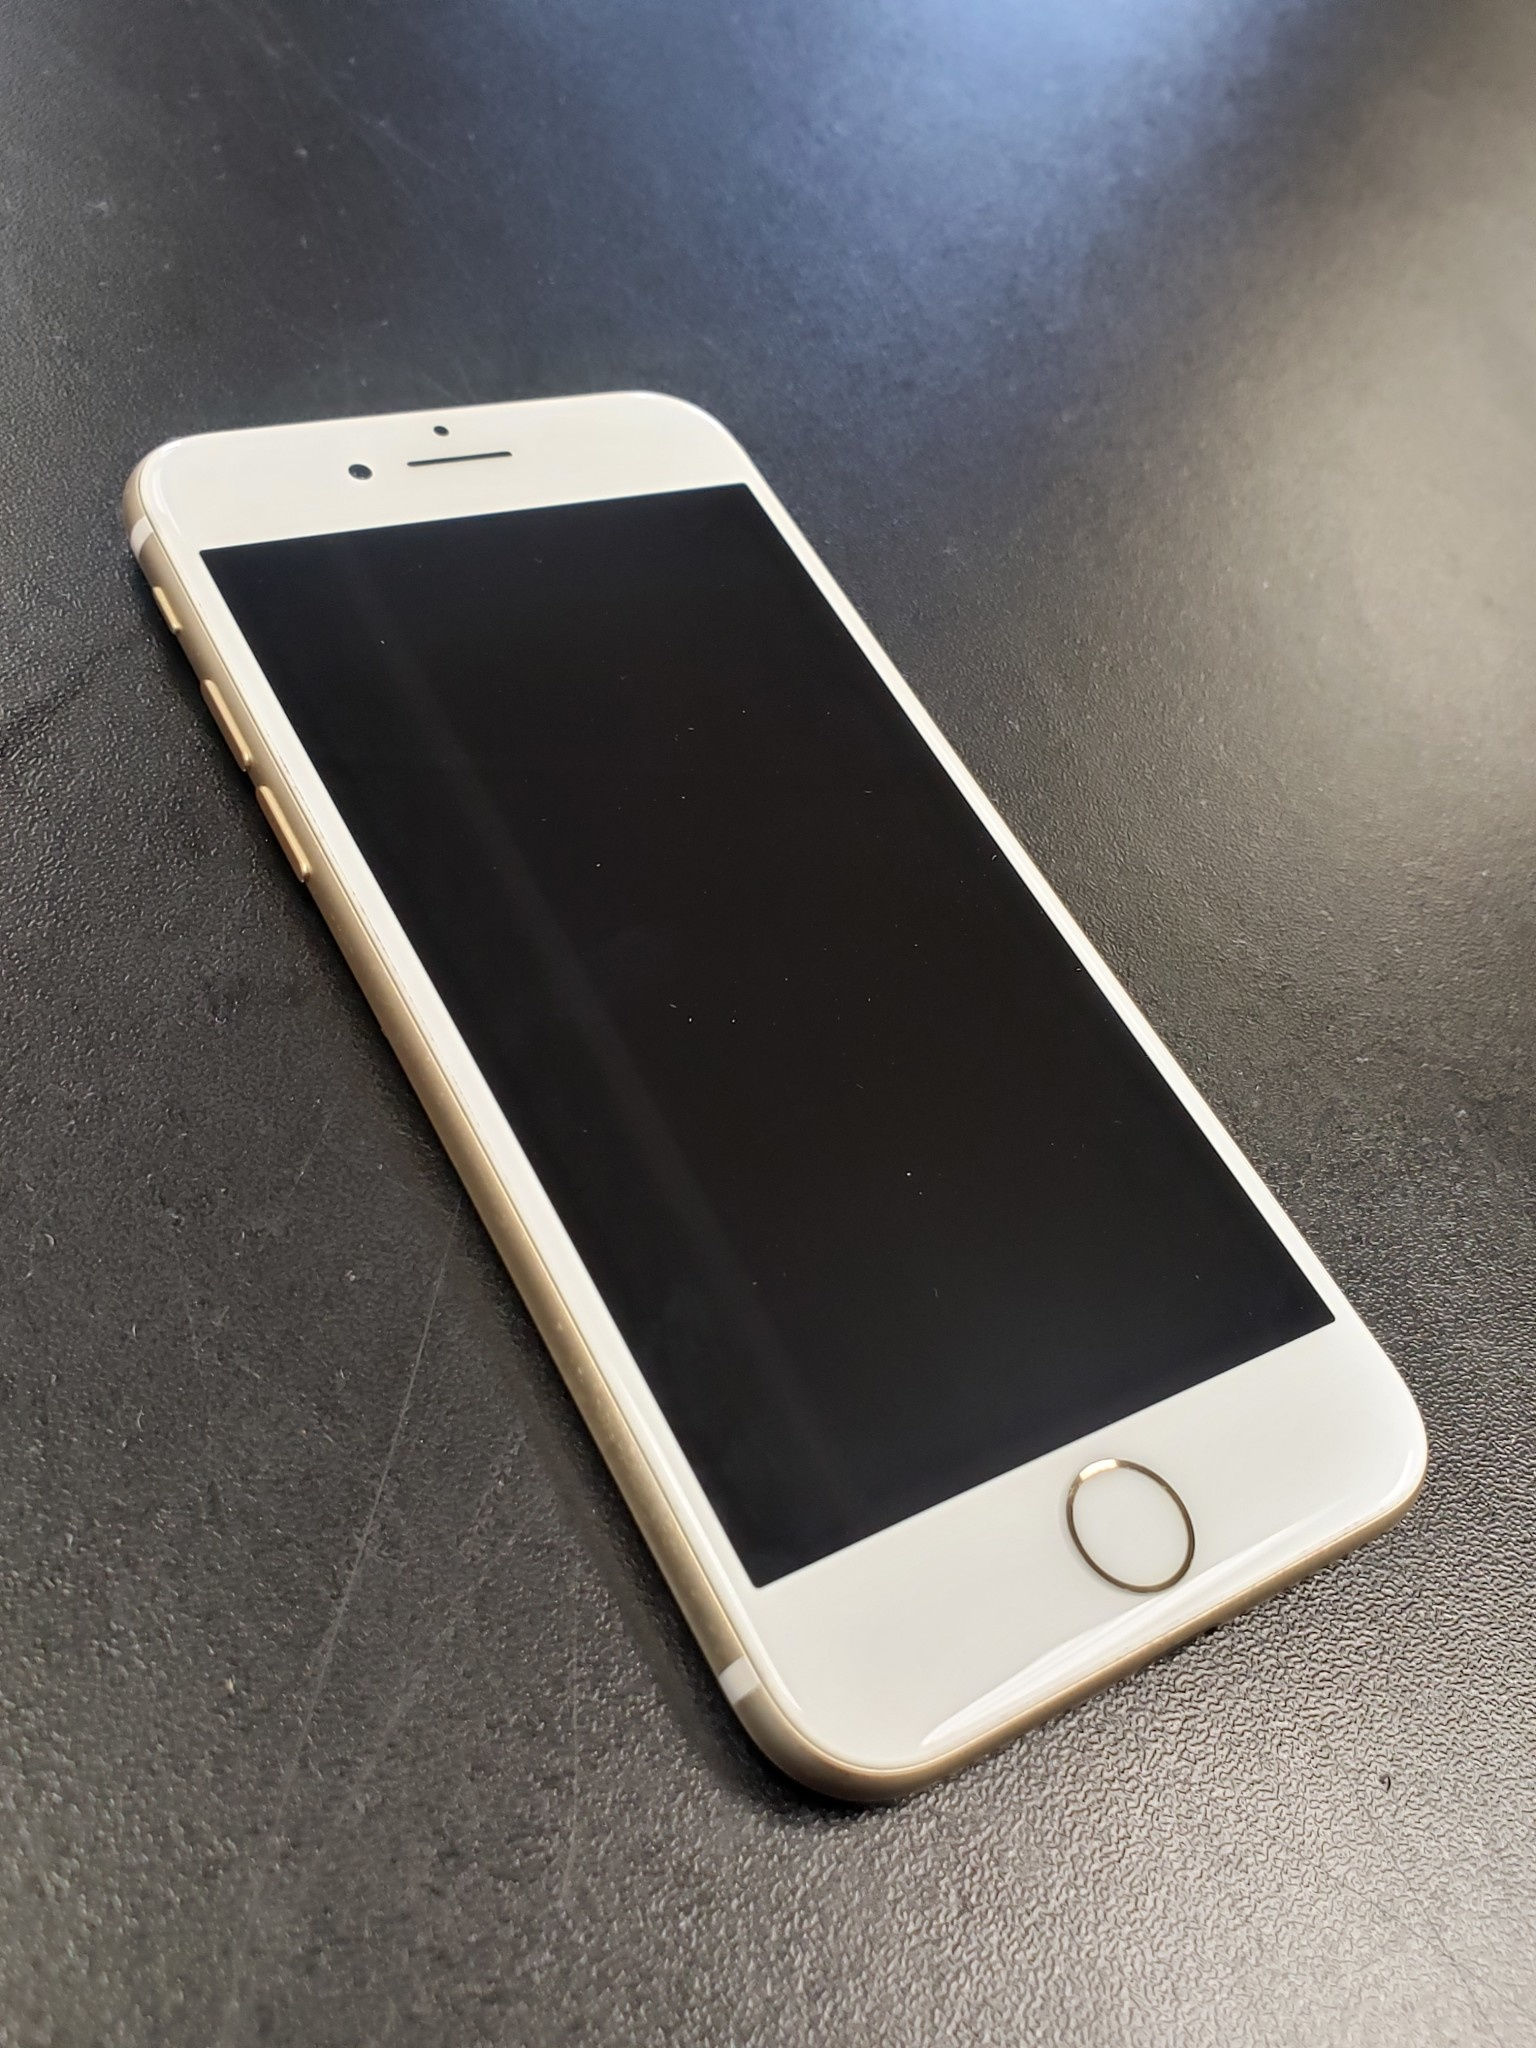 T-Mobile/MetroPCS Only - iPhone 7 - 32GB - Gold